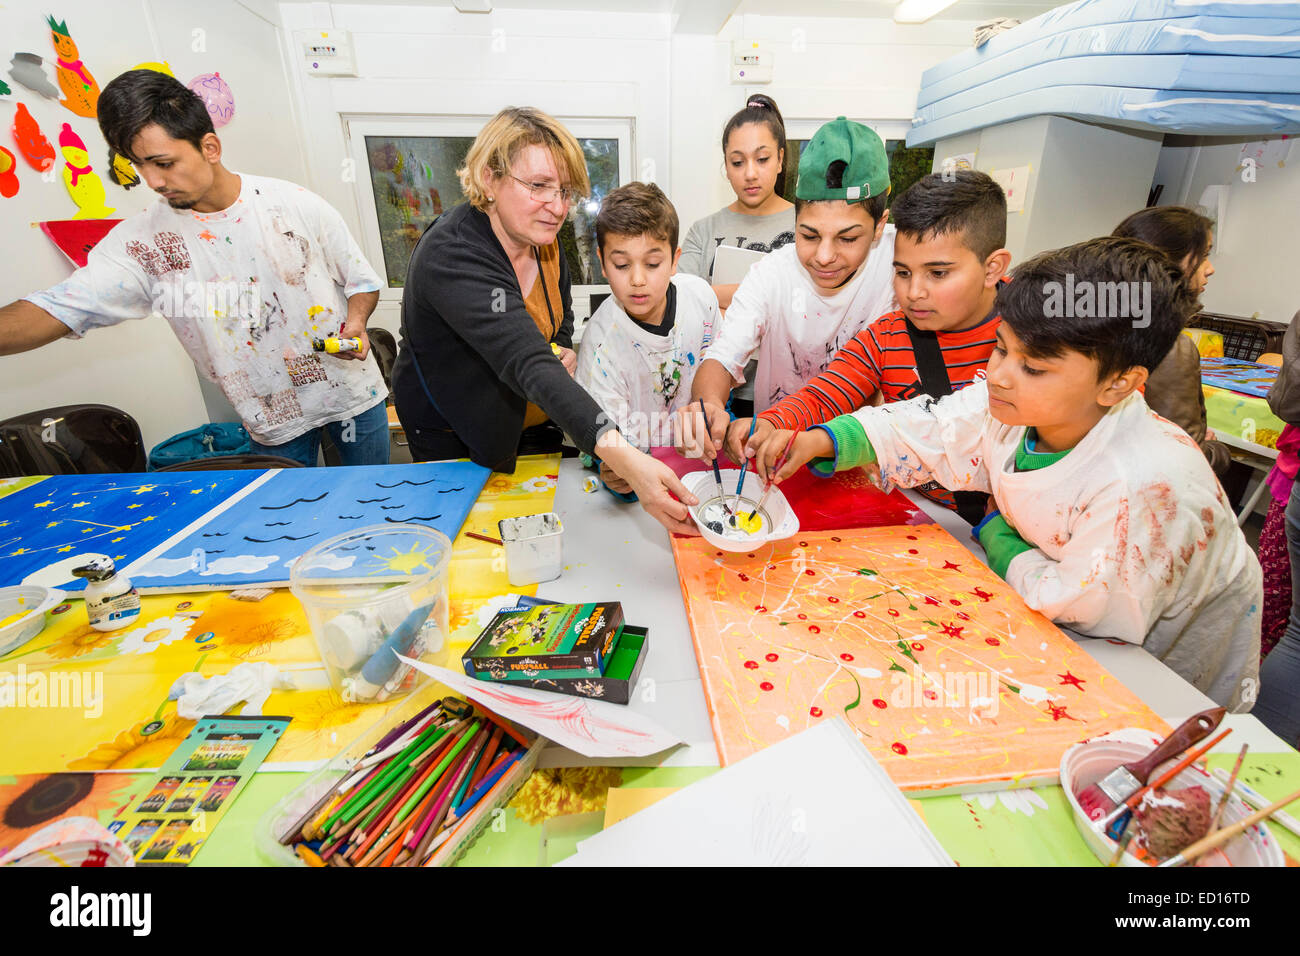 A graphic designer, 2nd from left, works with refugee children in a refugee accomodation. - Stock Image